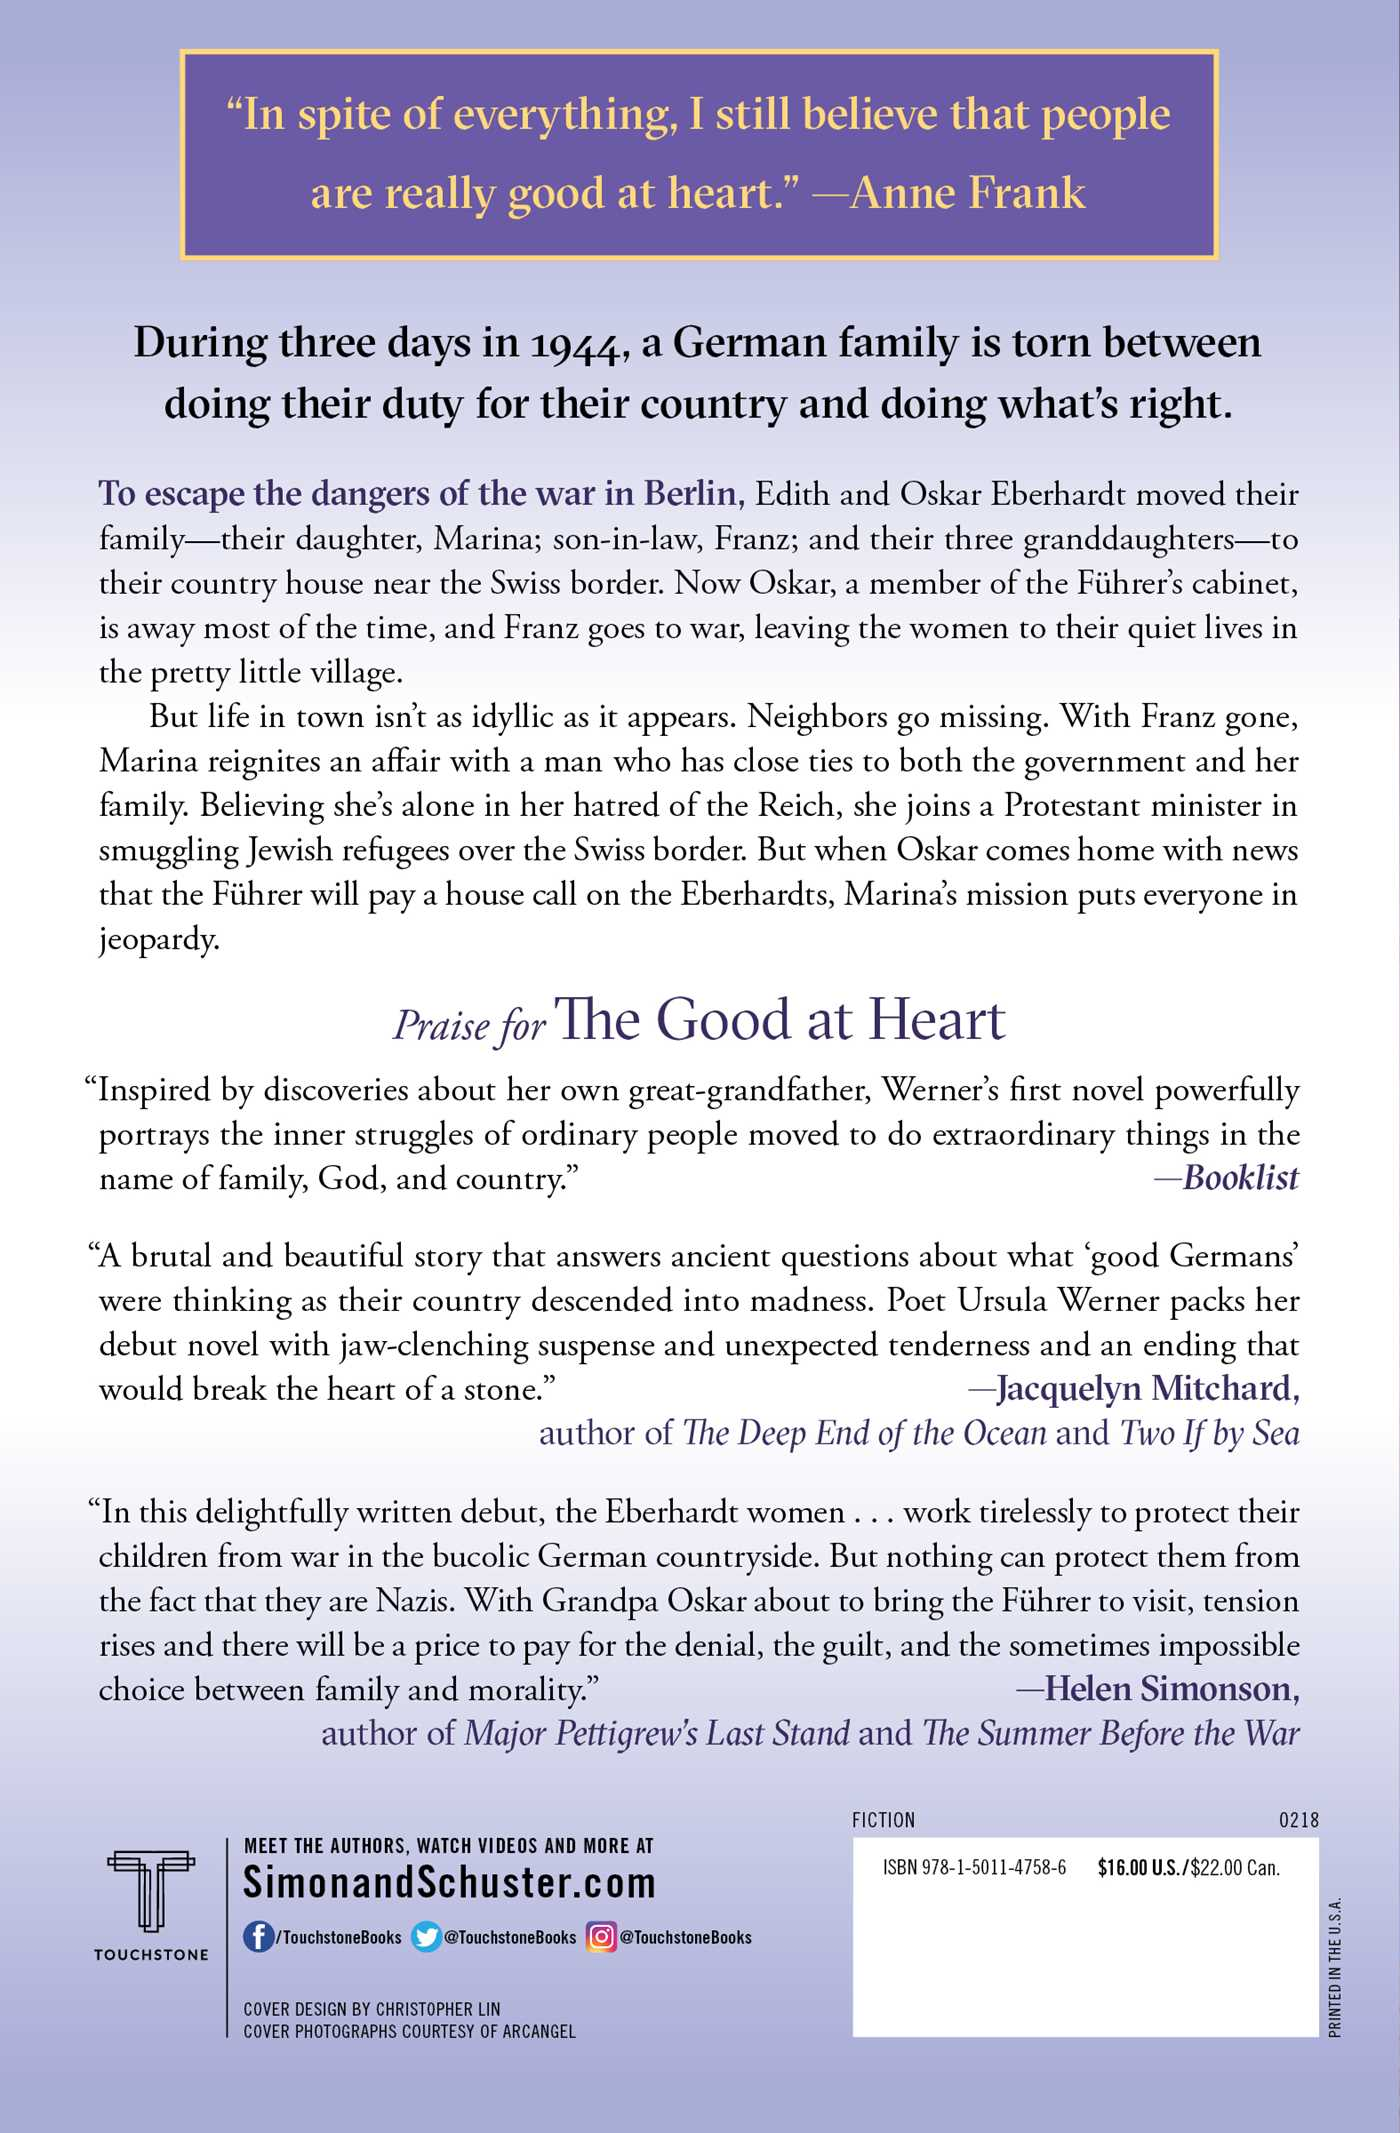 The good at heart 9781501147586 hr back